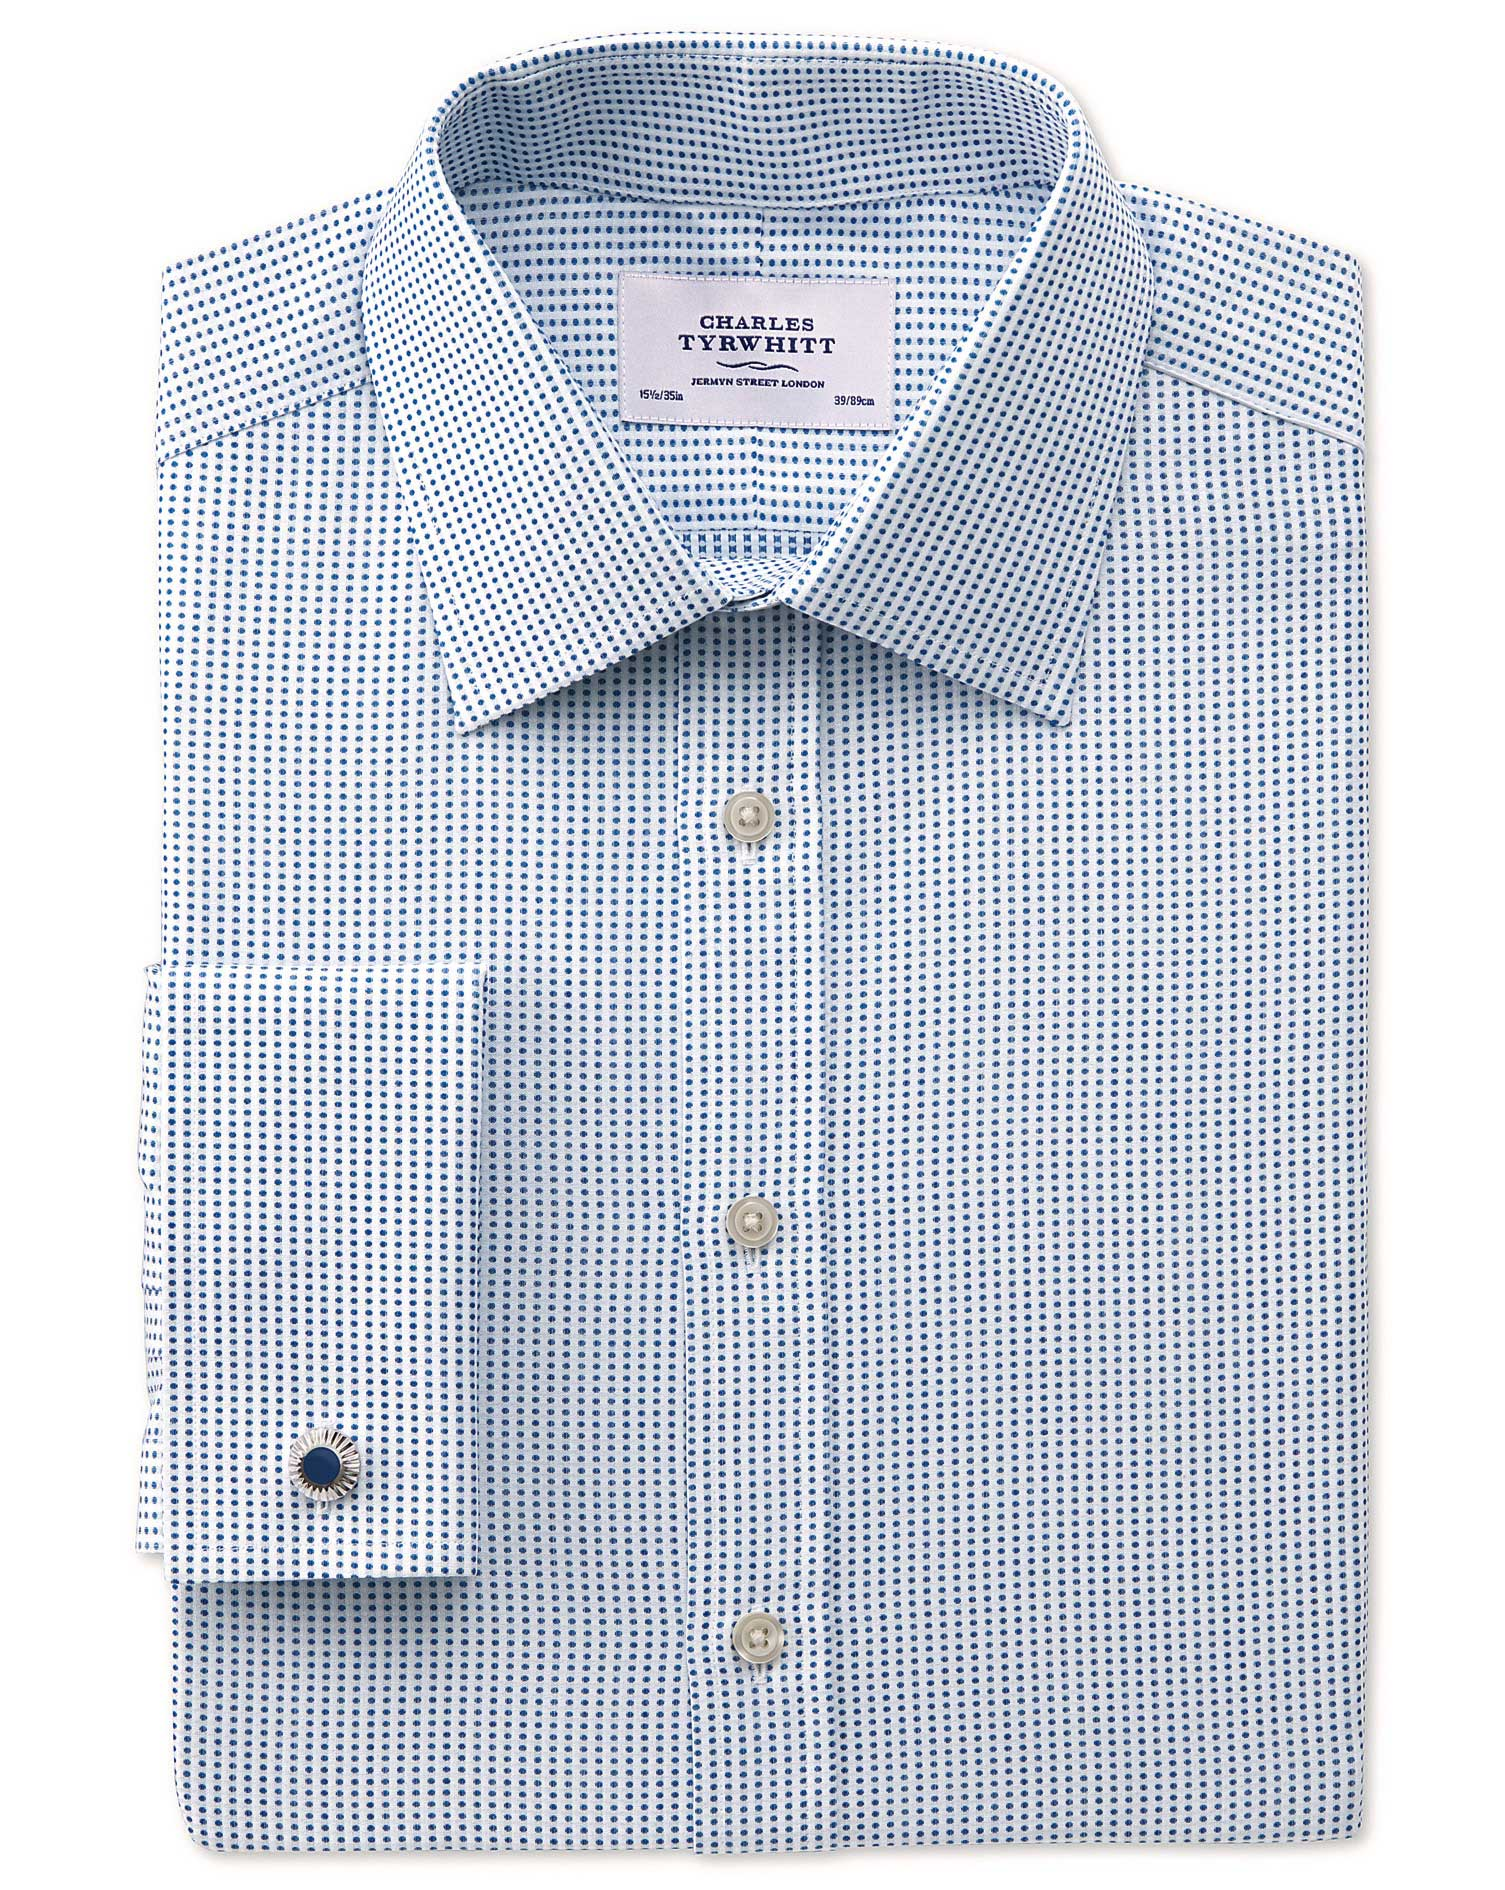 Classic Fit Pima Cotton Double-Faced Navy Formal Shirt Double Cuff Size 16.5/38 by Charles Tyrwhitt